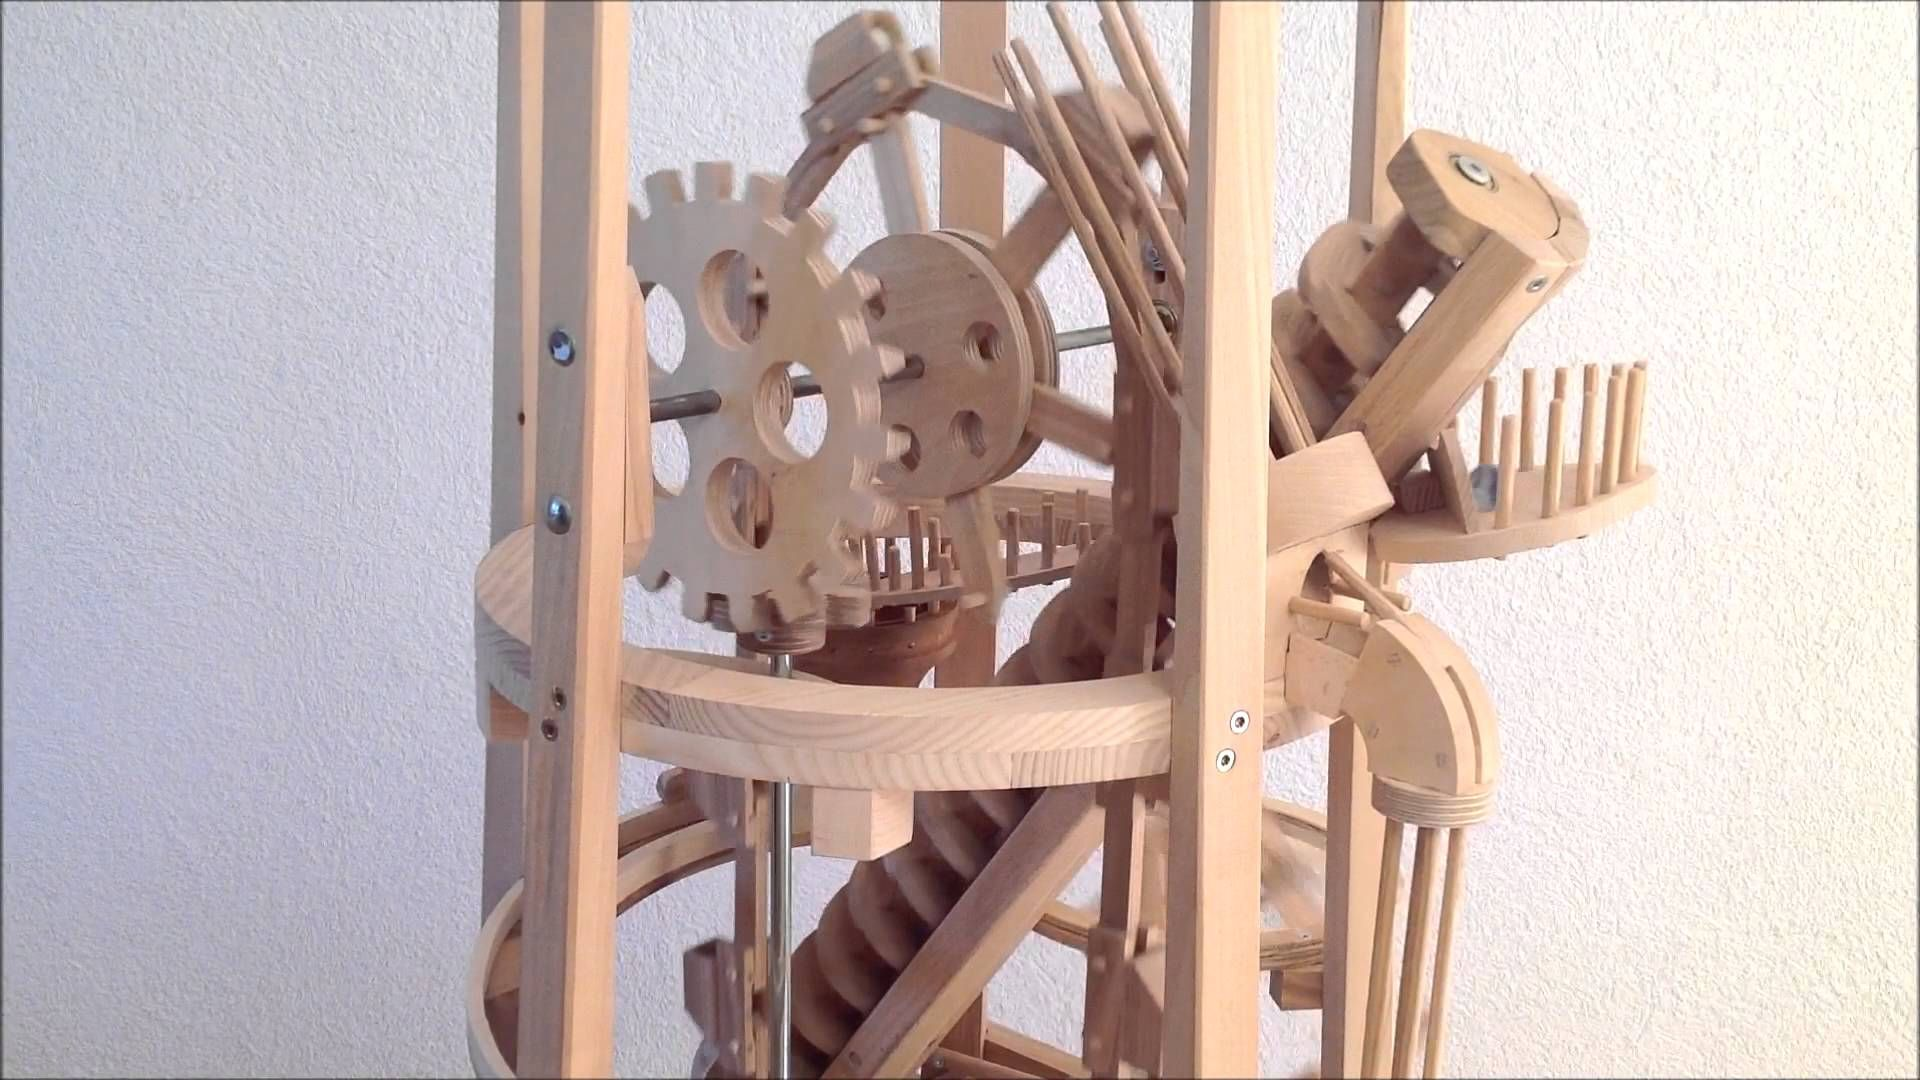 One Of Seven Amazing Marble Machines By Paul Grundbacher